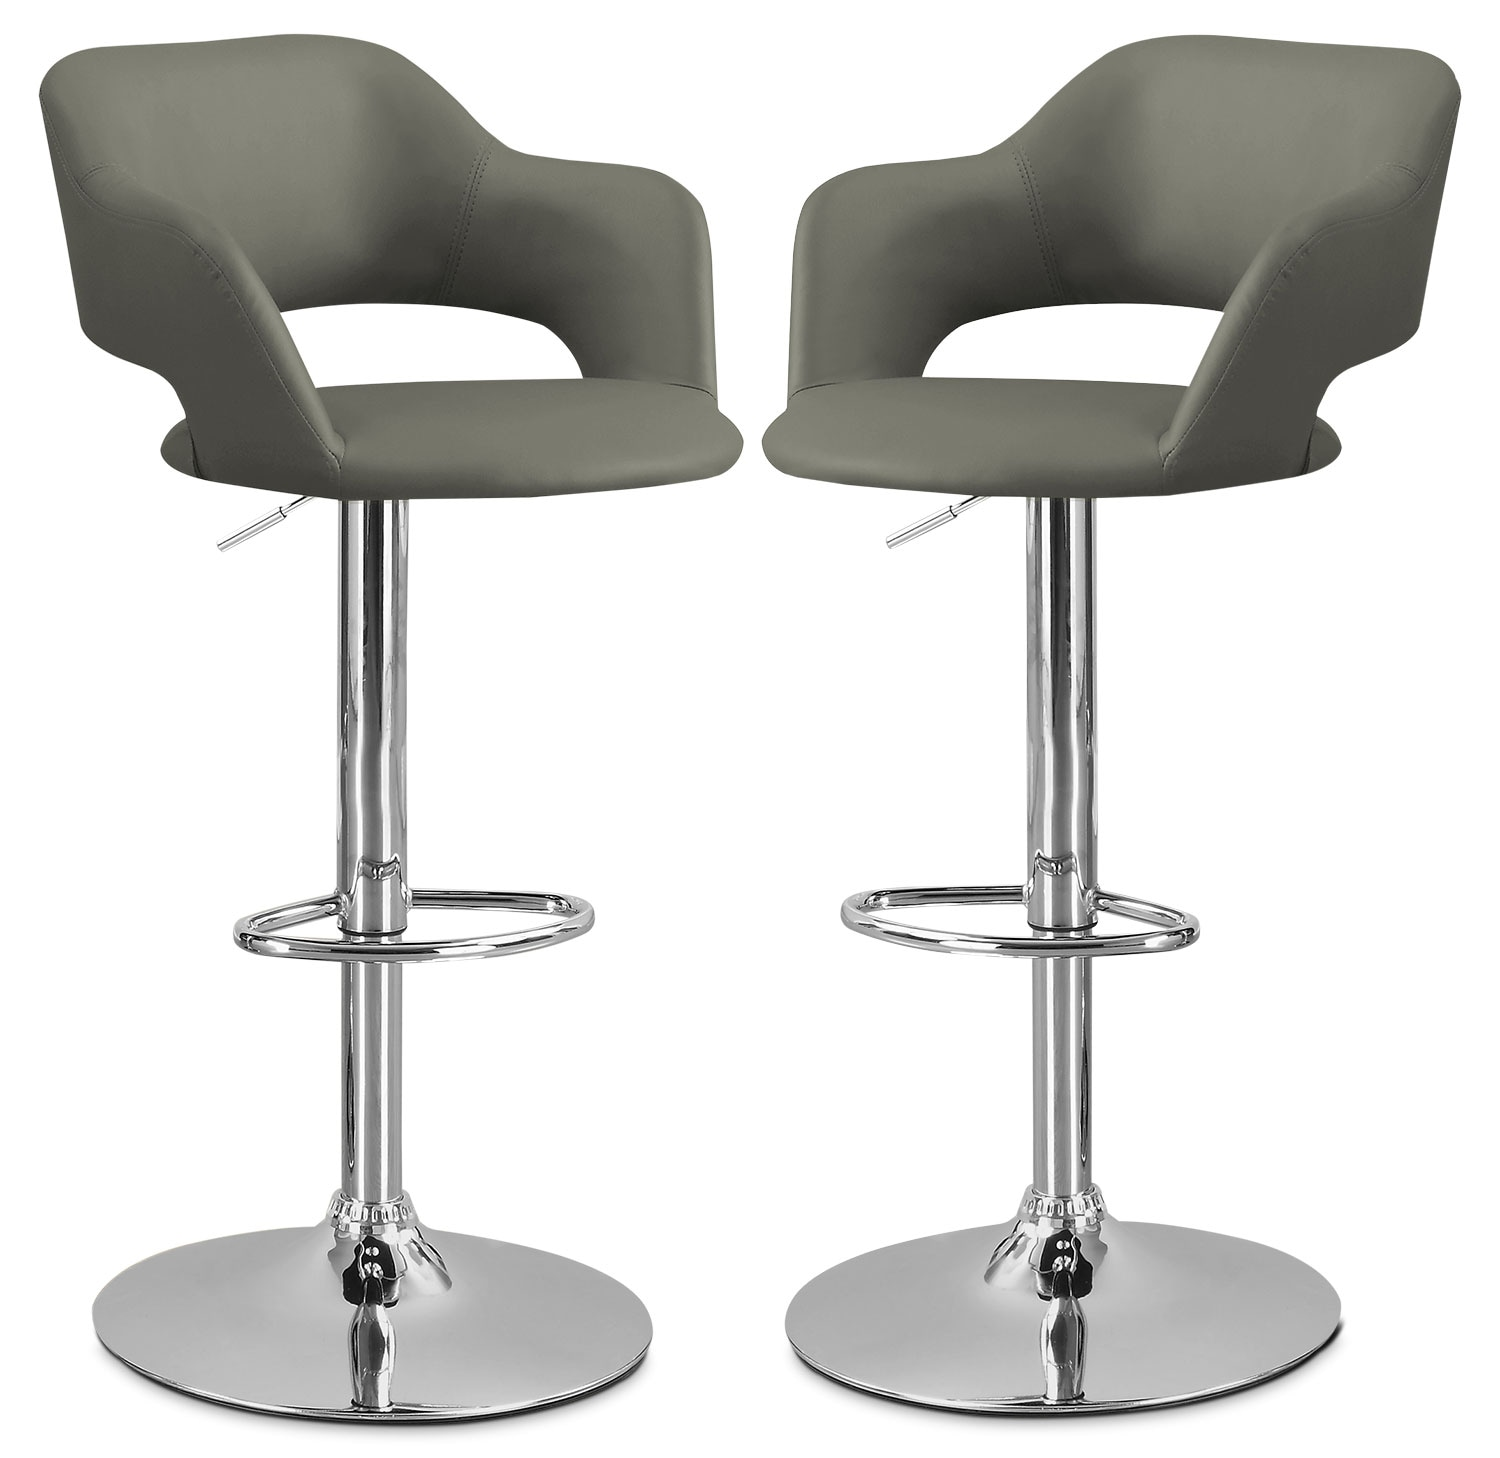 Dining Room Furniture - Monarch Hydraulic Contemporary Bar Stool, Set of 2 – Grey